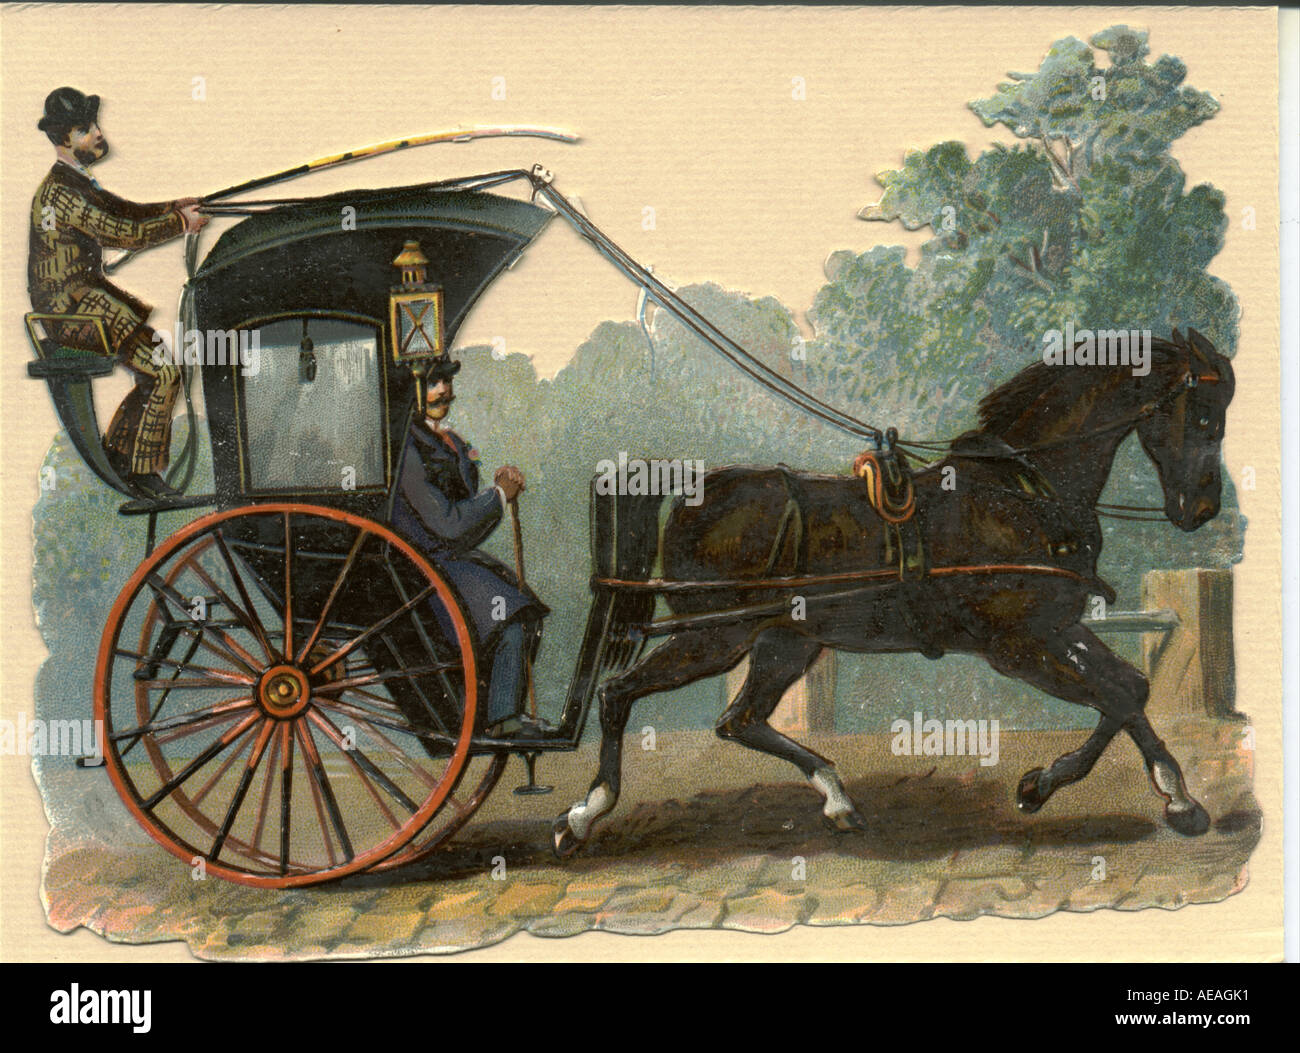 Chromolithographed die cut scrap of hansom cab circa 1880 Stock Photo